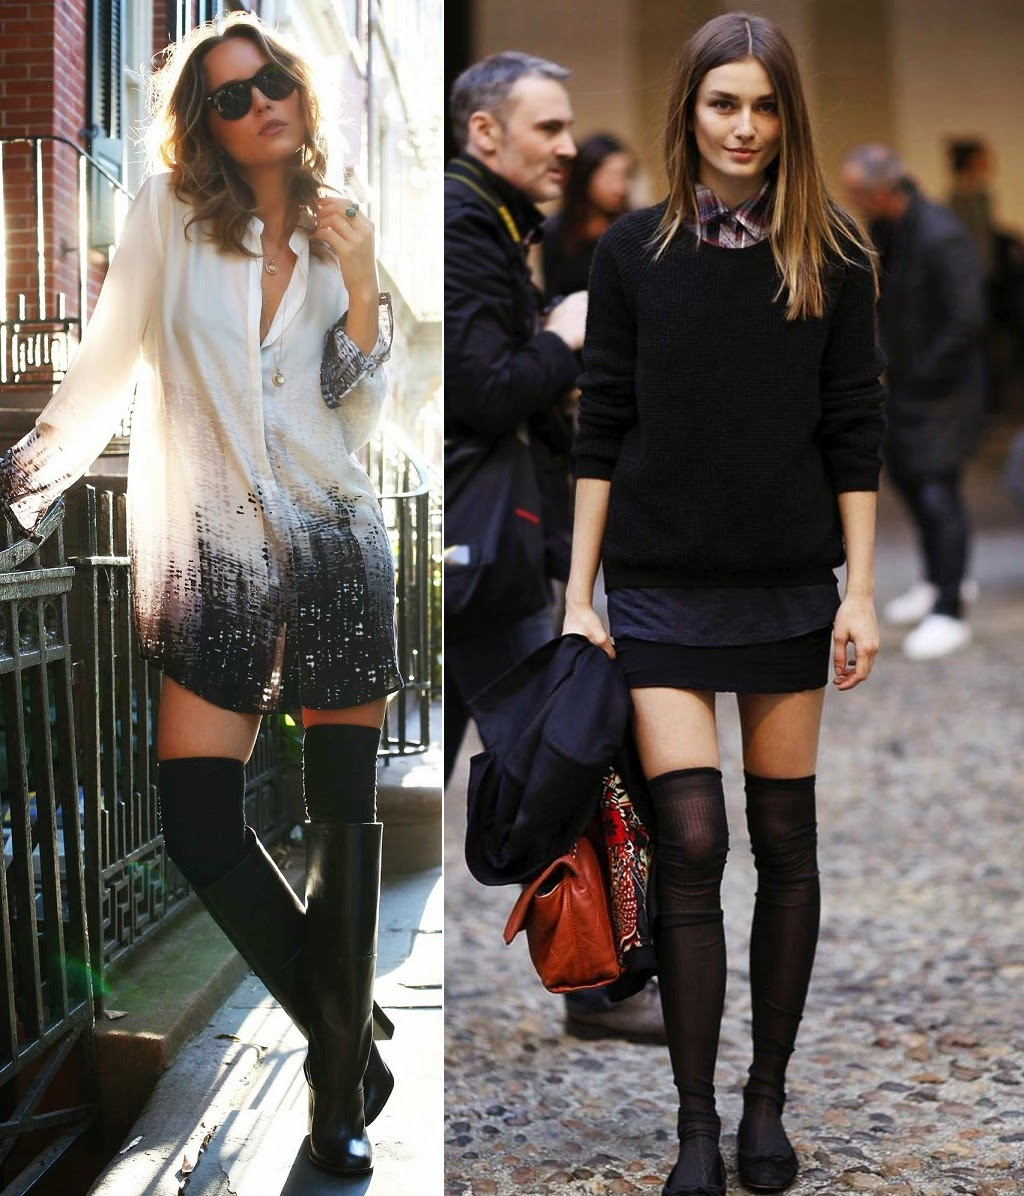 street-style-outfit-fashion-knee-high-socks-mini-skirt